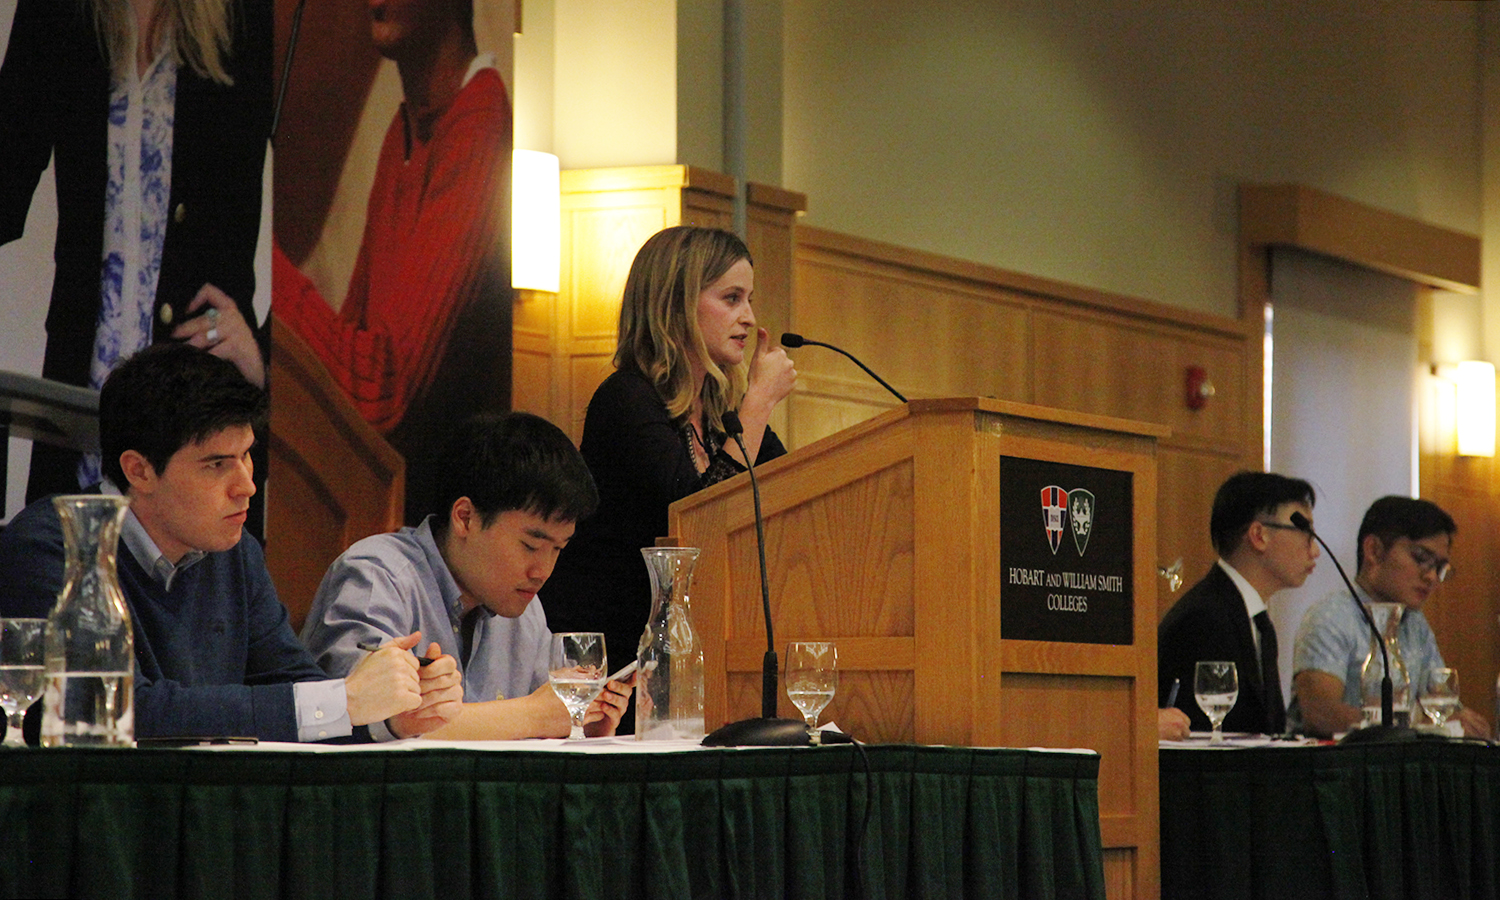 Representing Stanford University, Bobbi Leet offers a rebuttal during the HWS Round Robin in the Vandervort Room.